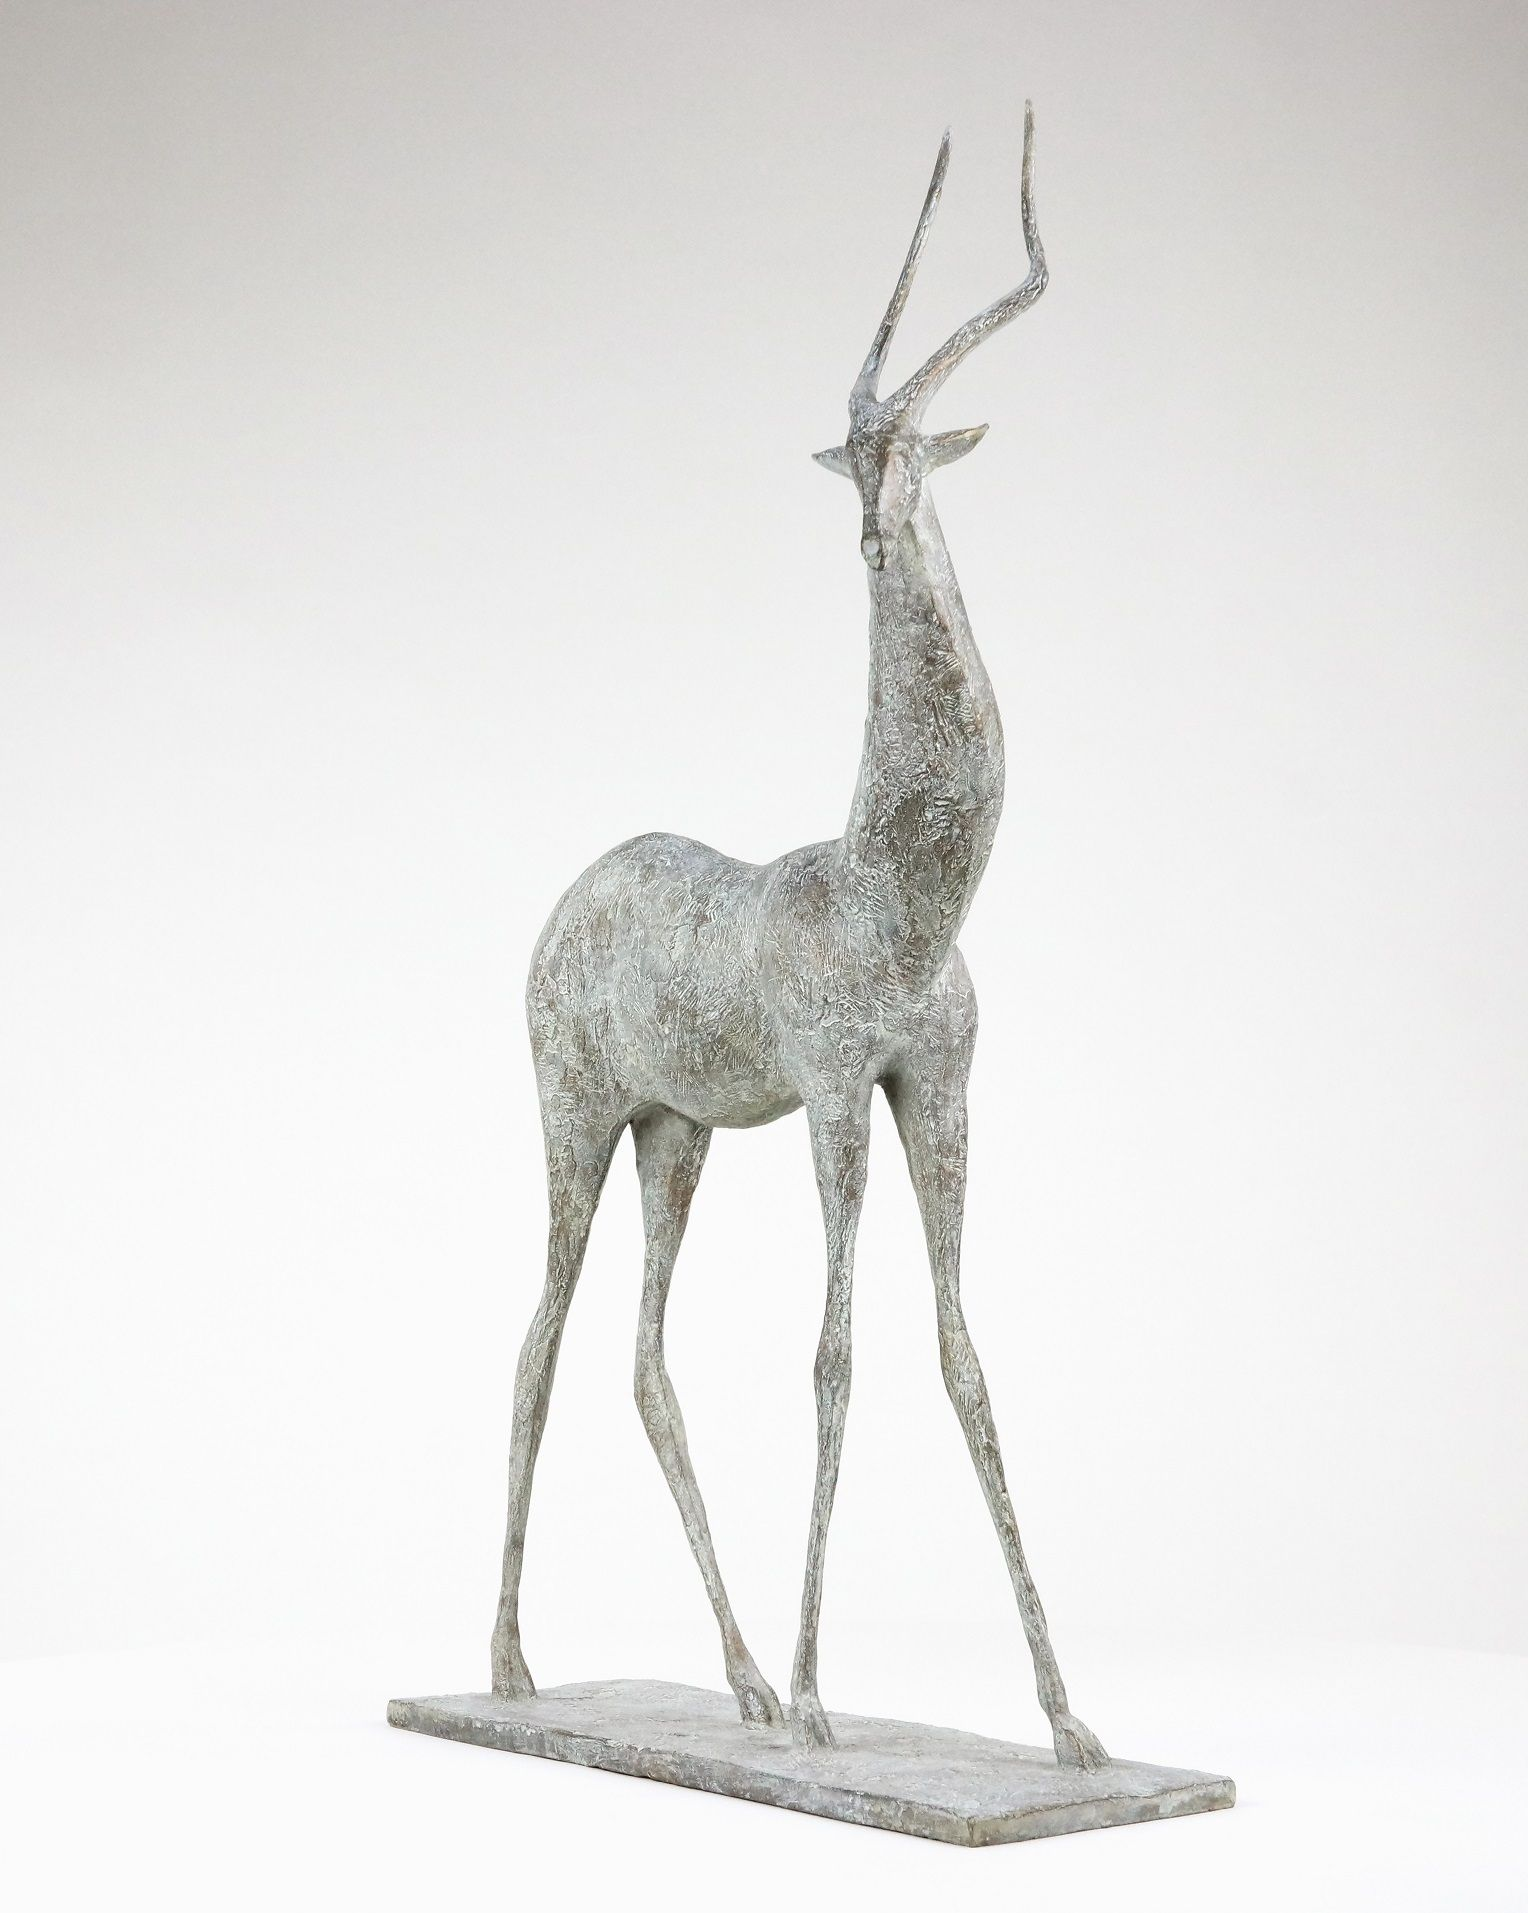 Gazelle I, Pierre Yermia,Sculpture contemporaine, detail 3